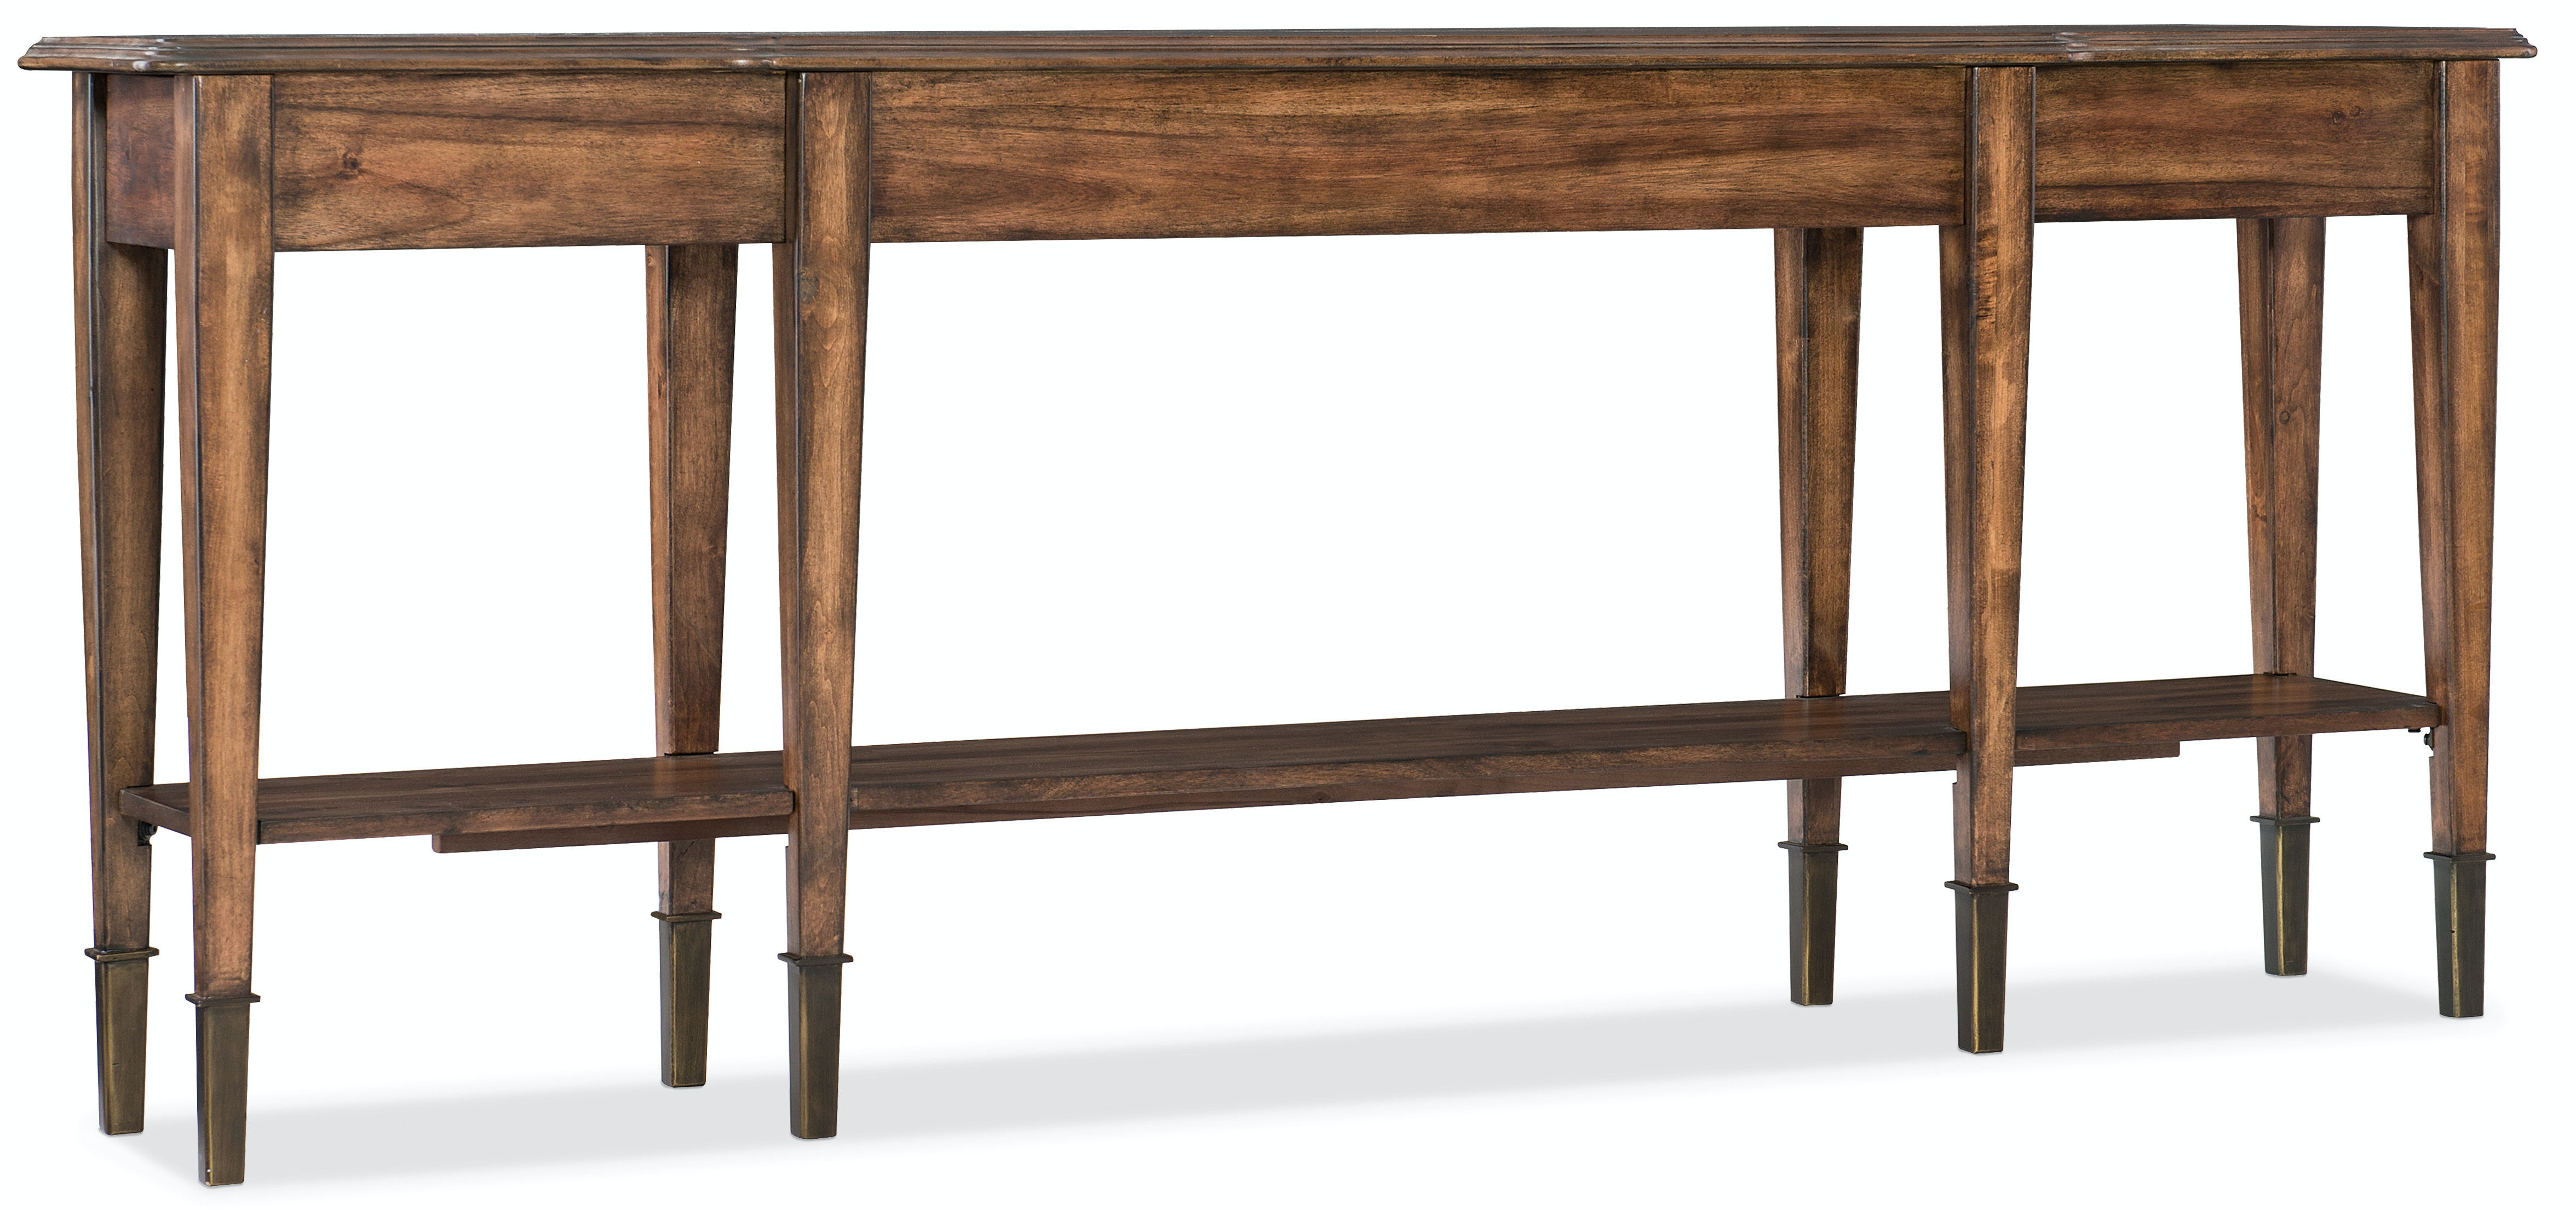 Hooker Furniture Skinny Console Table 5660 85001 MWD